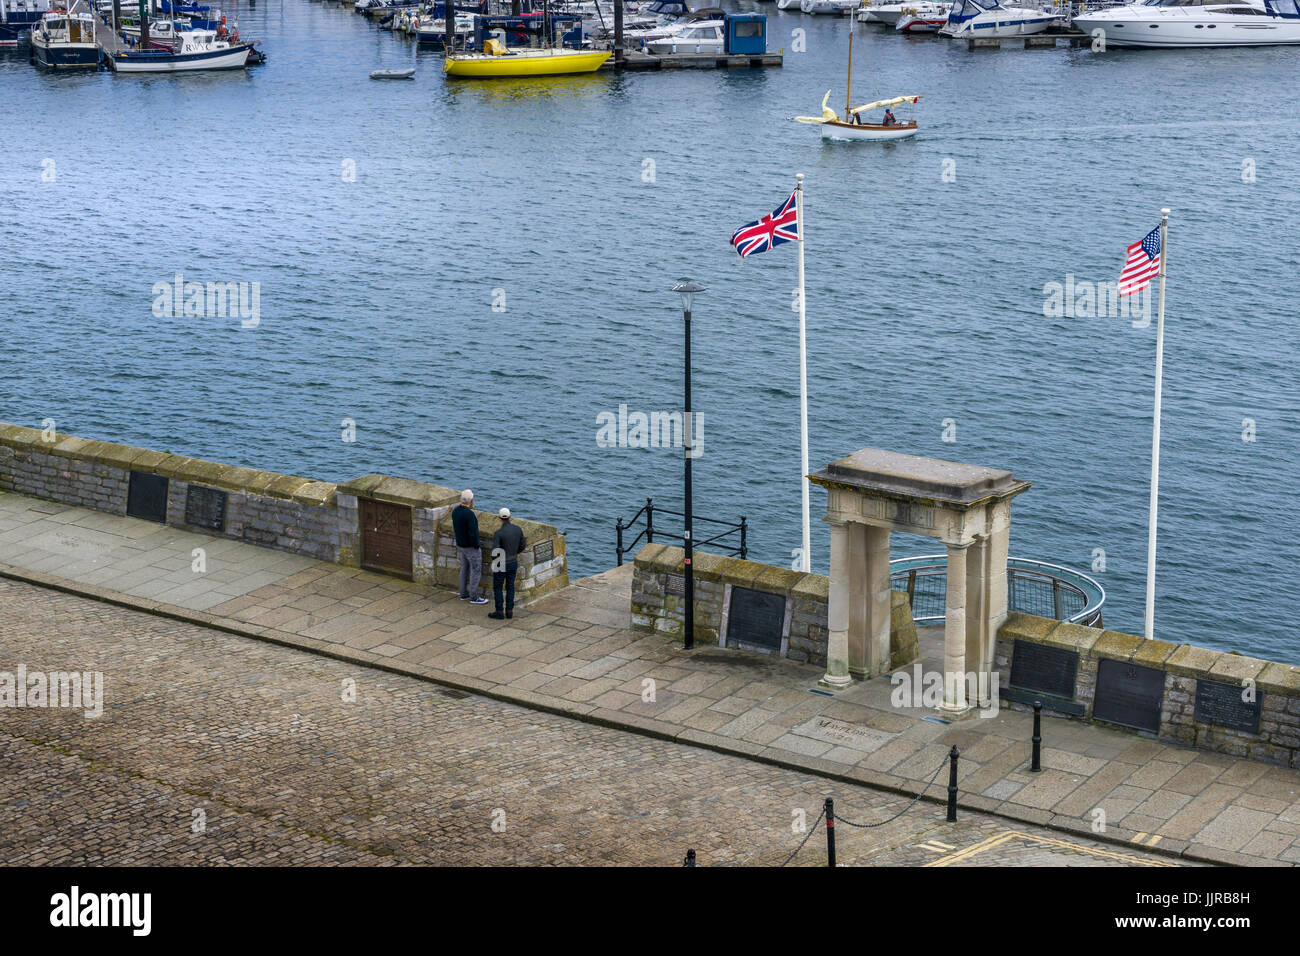 The Mayflower Steps in Plymouth, Devon where the Pilgrim Fathers departed for the new world in 1620. - Stock Image